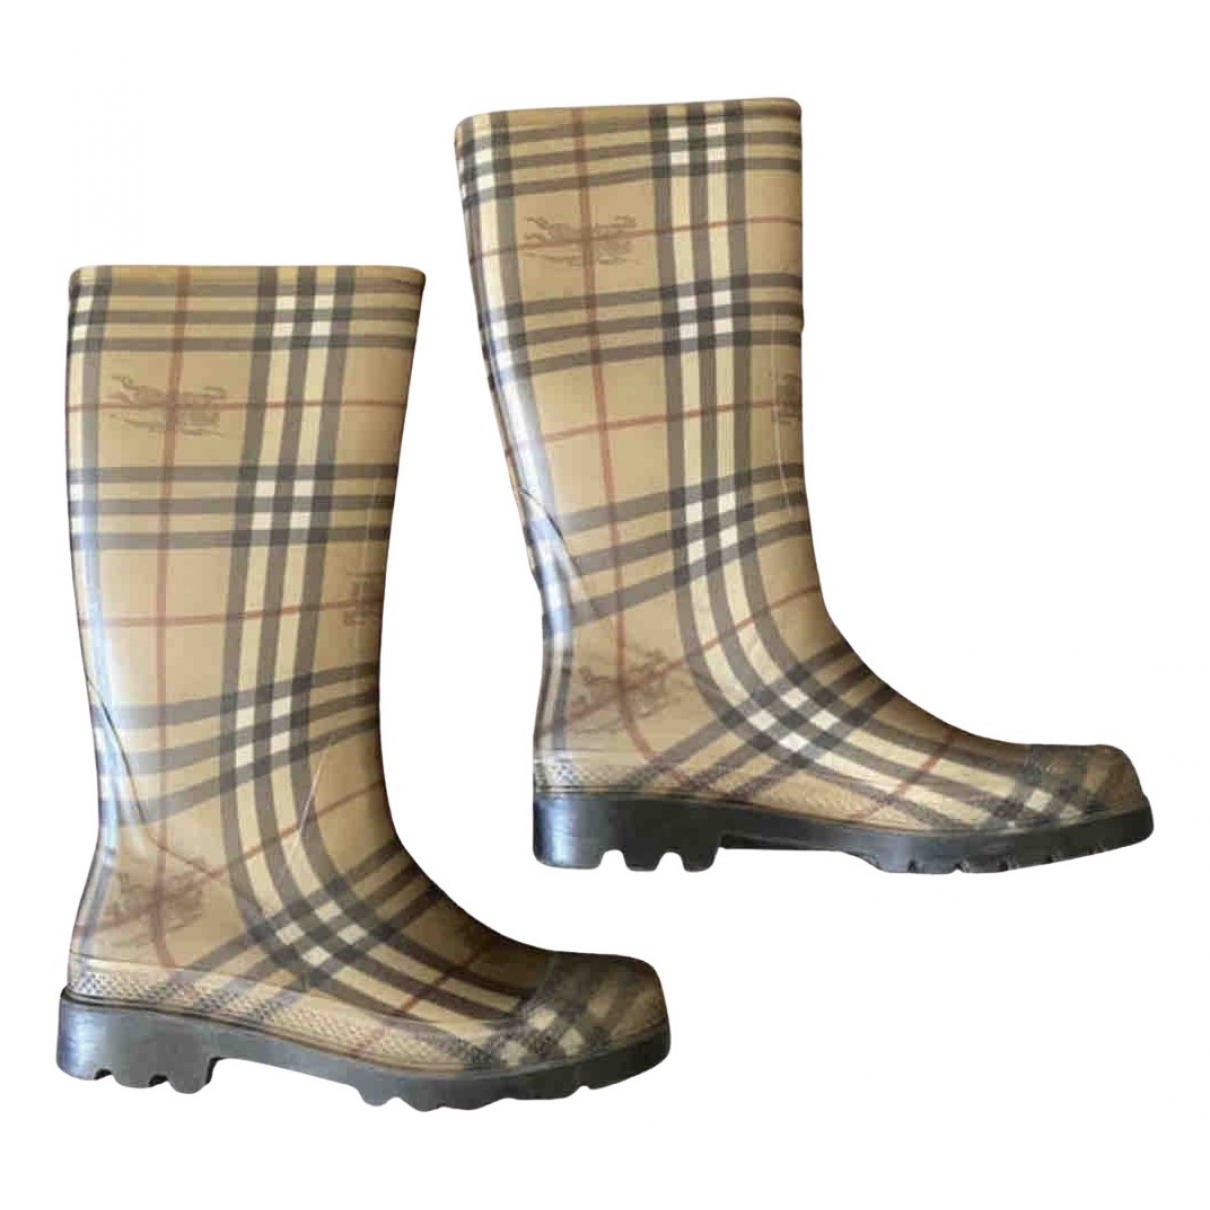 Burberry N Brown Rubber Boots for Women 7 UK